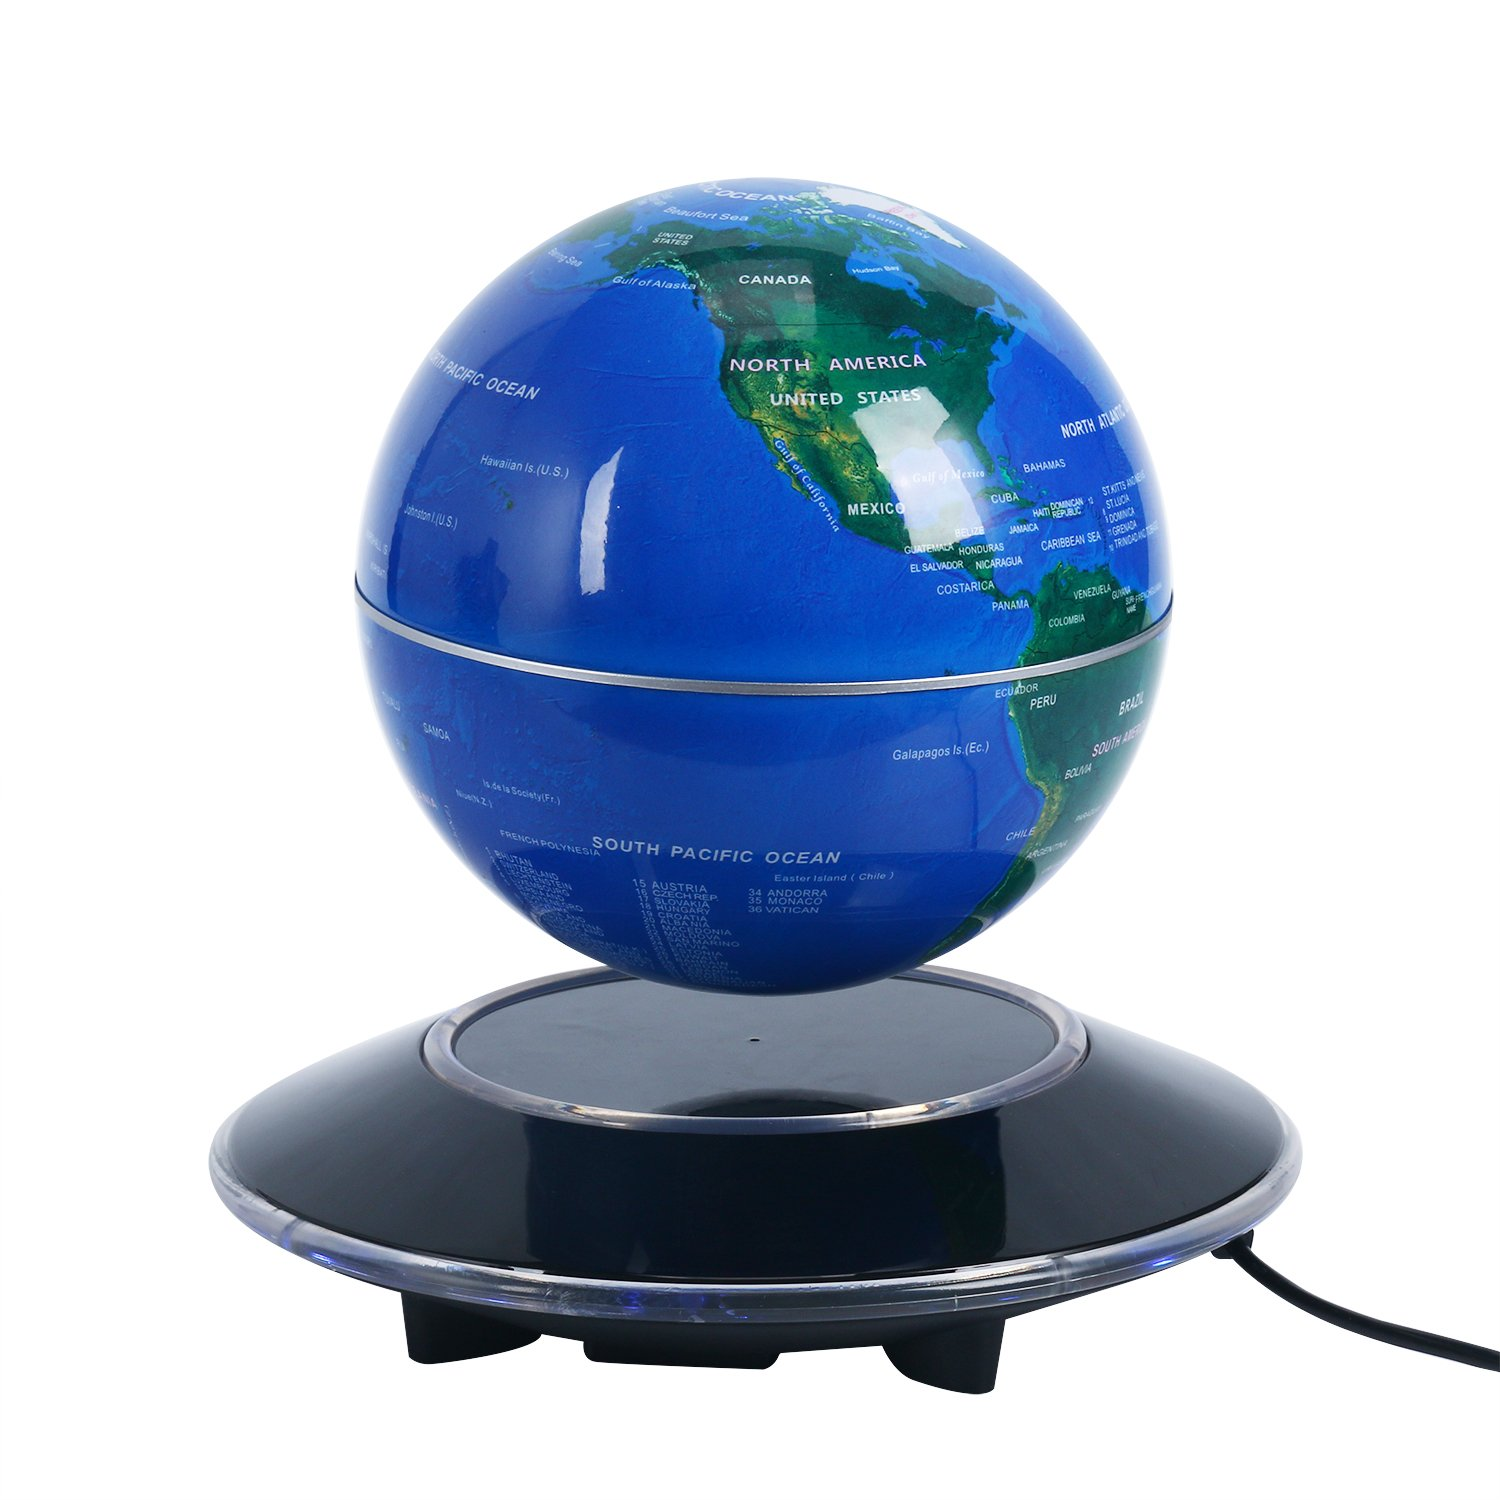 Homend 6'' Magnetic Levitation Floating Globe World Map Light Decor Anti Gravity Rotating World Map with 8 LED Blue Globe for Educational Gift Home Office Desk Decoration